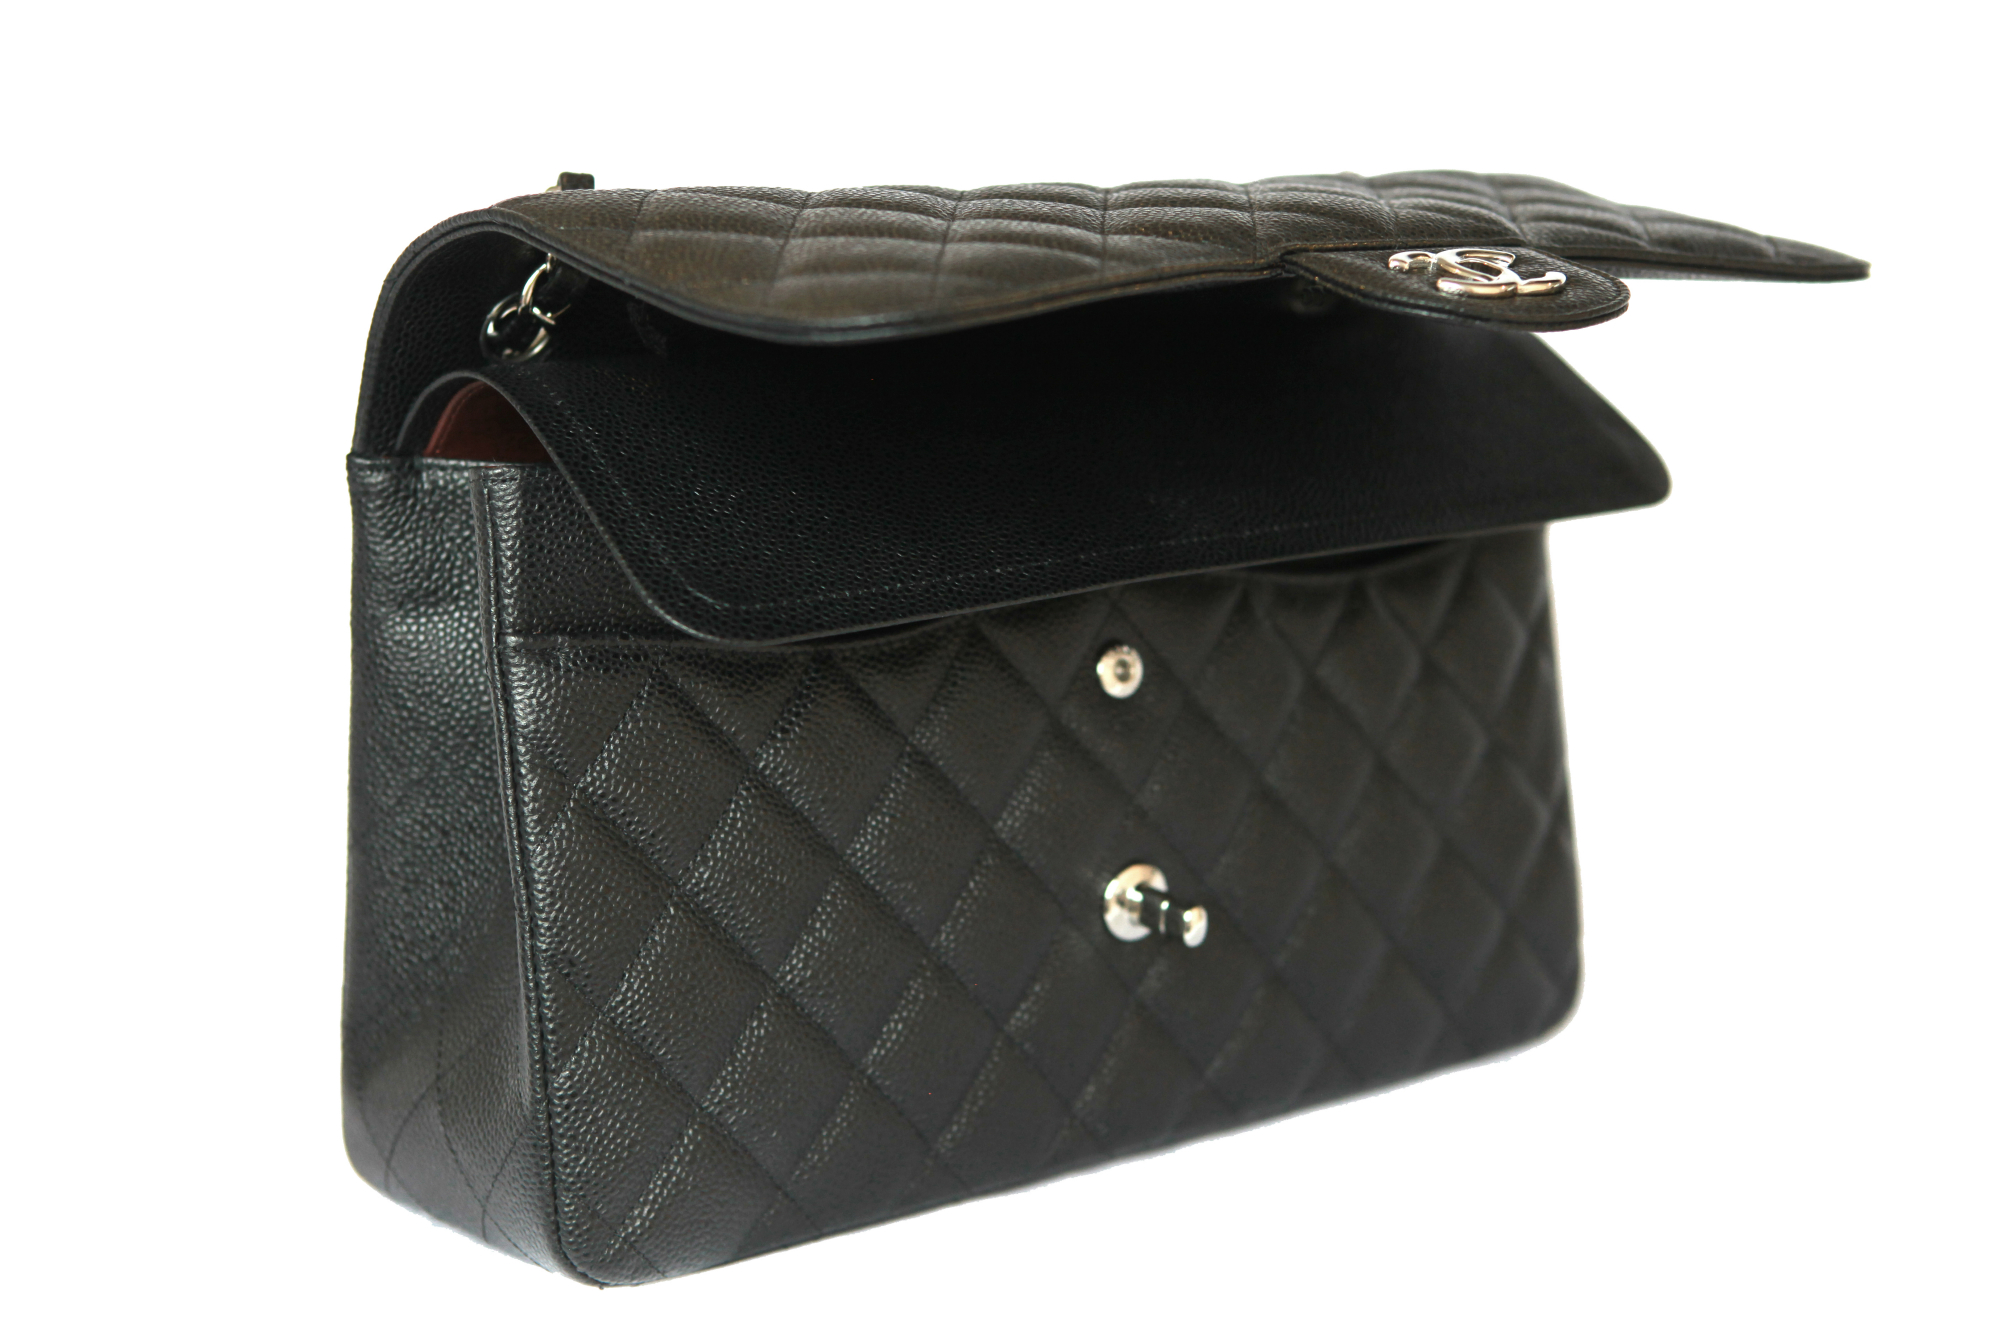 6b01b57a9e2 Hire a CHANEL Classic Flap Bag a Timeless handbag from Elite Couture